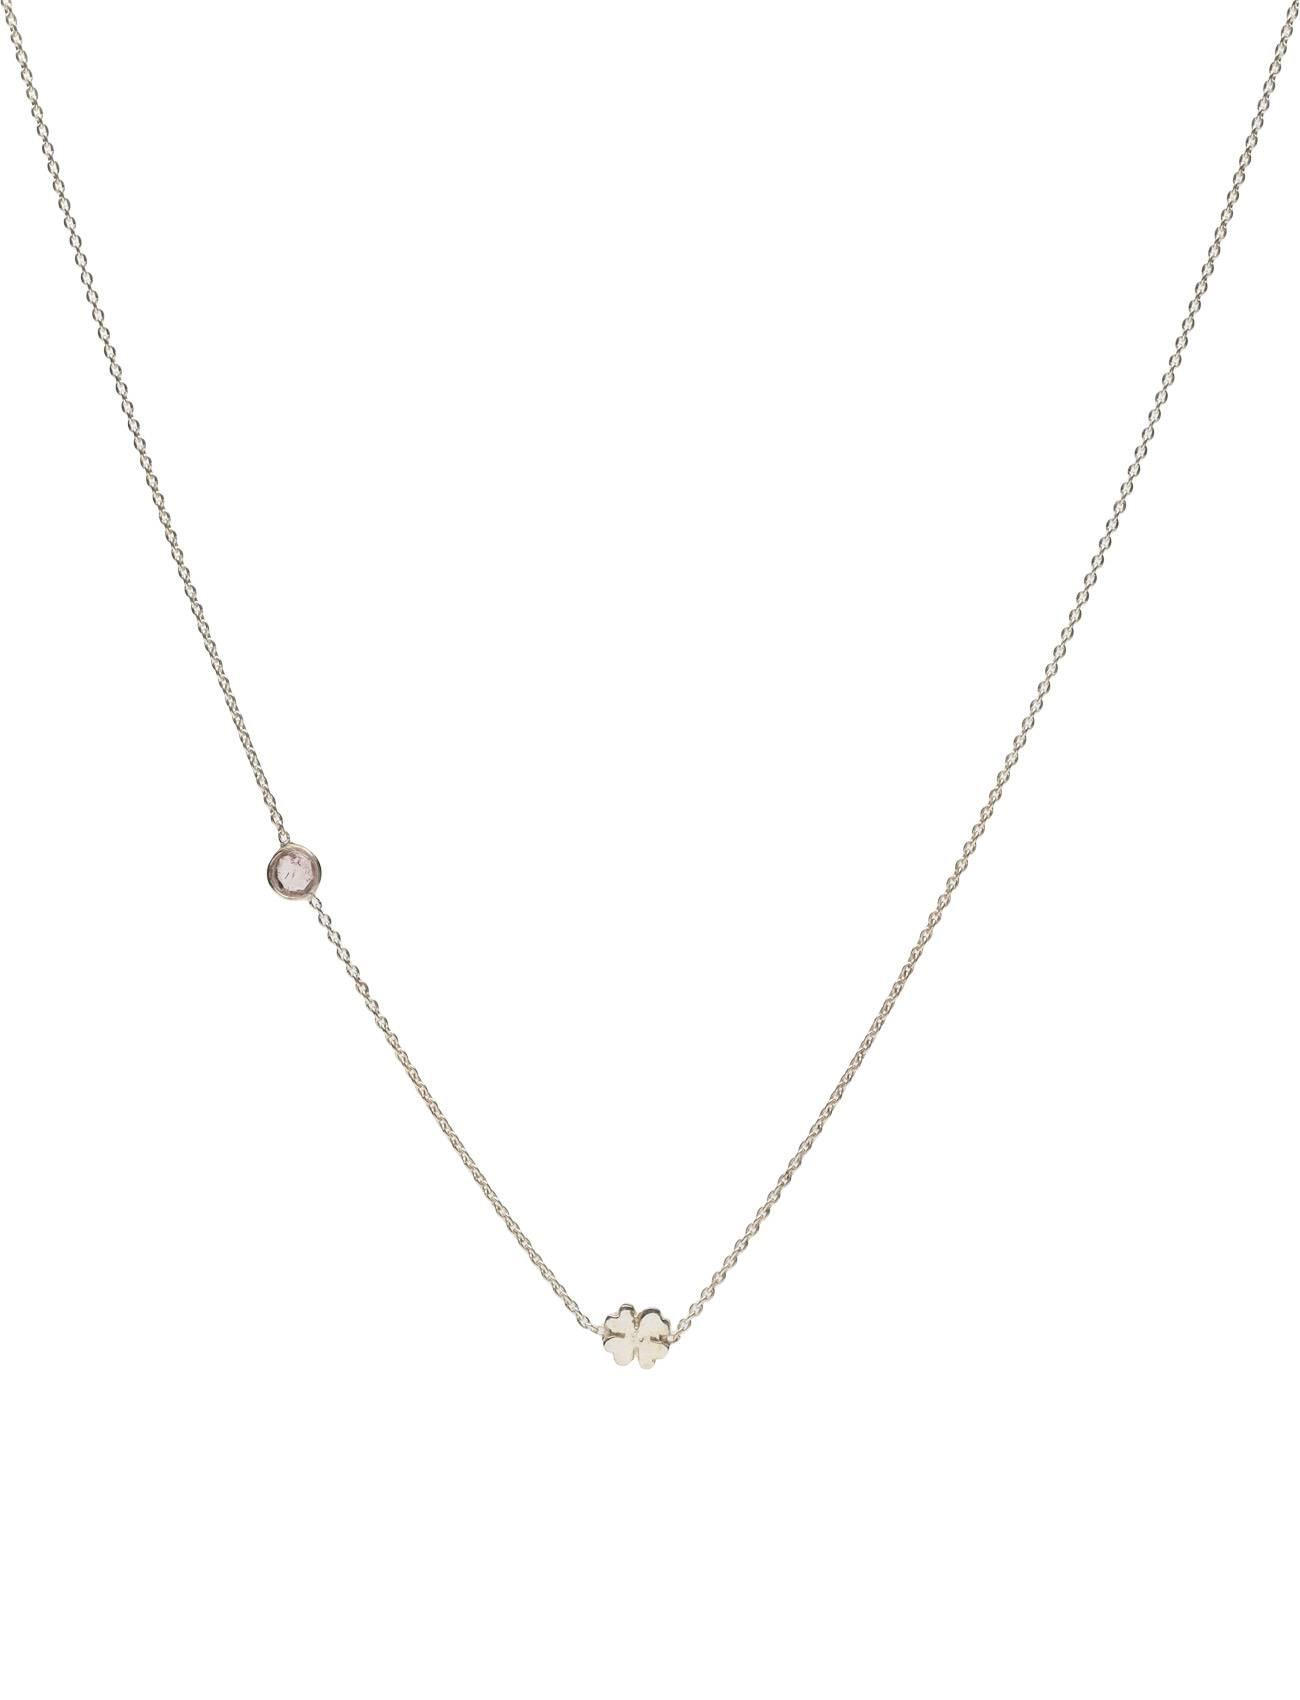 Syster P Sparkle Necklace Silver Clover Pink Tourmaline